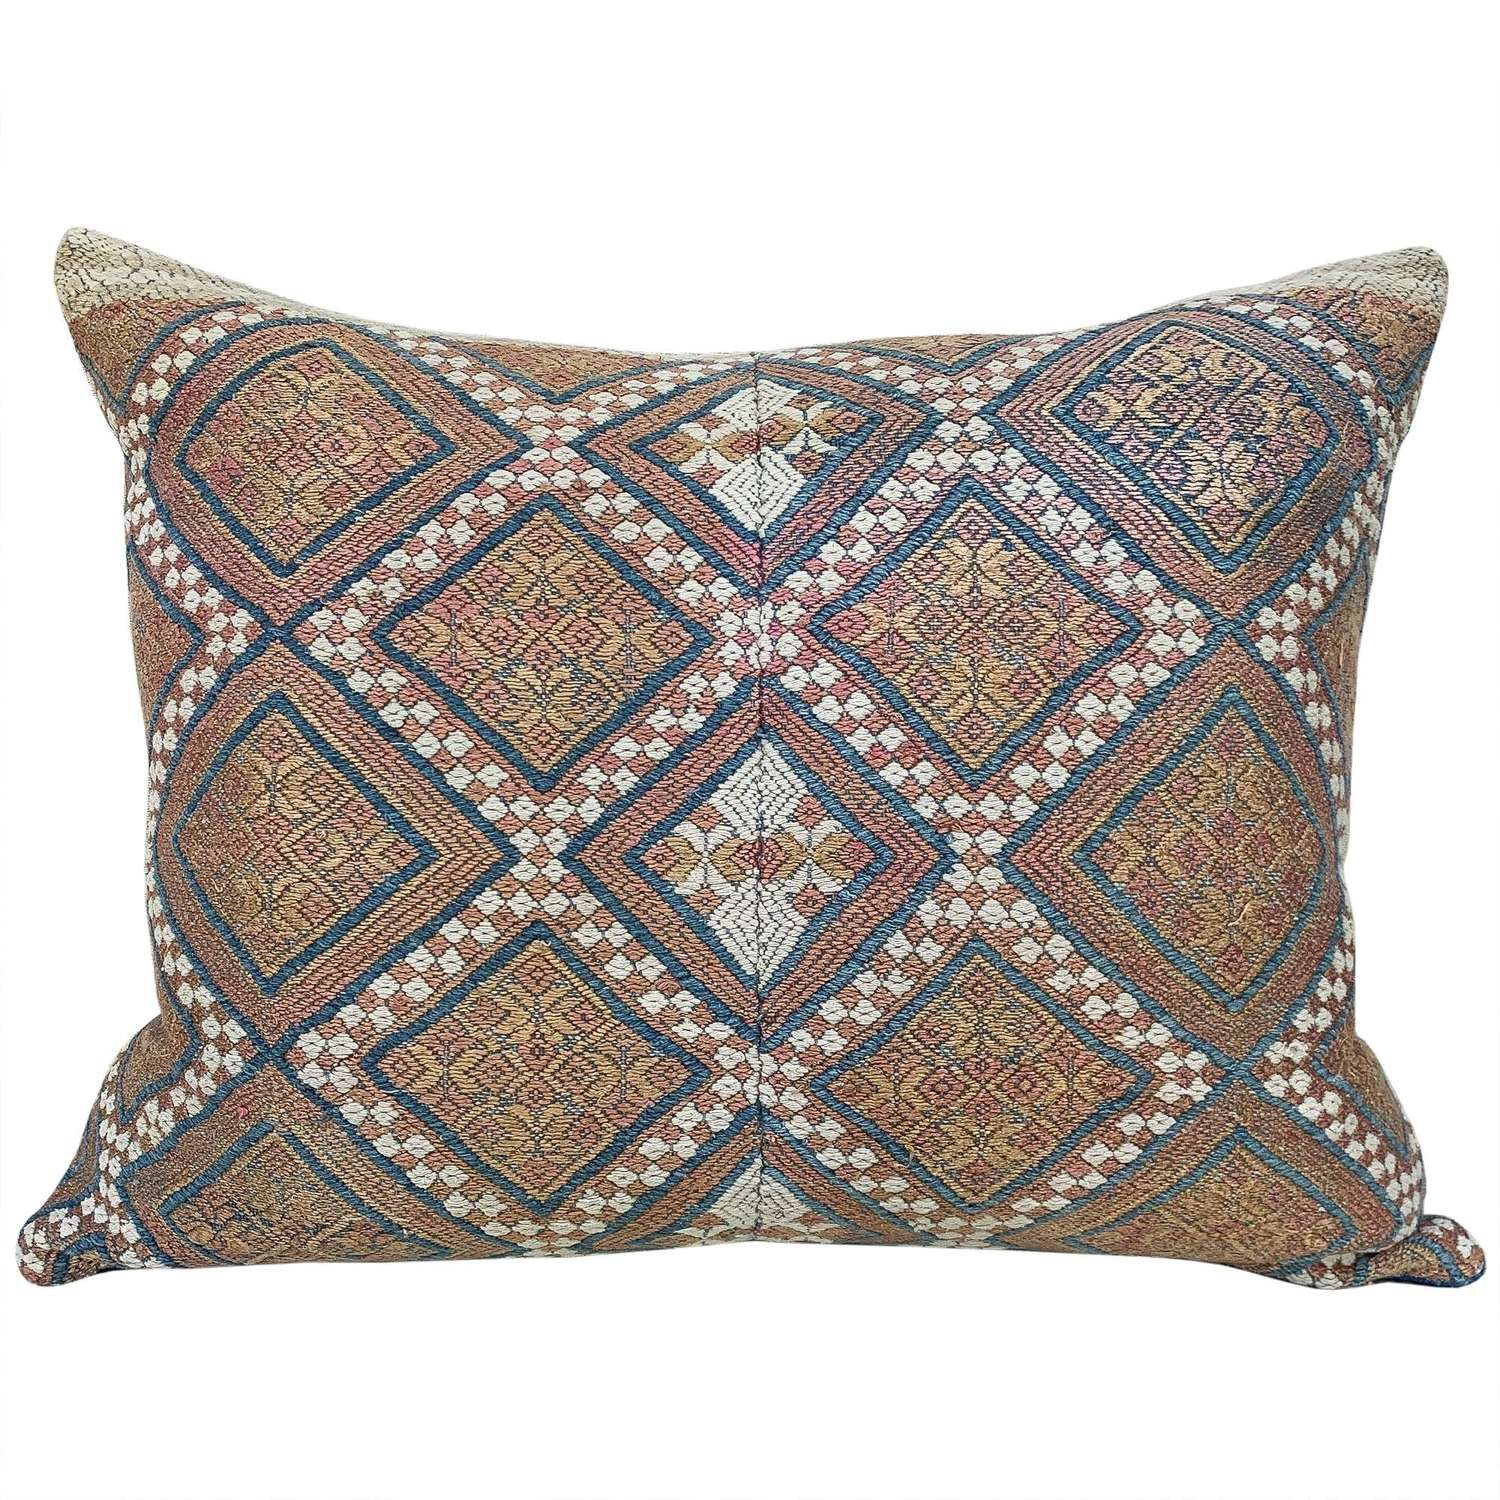 Large Buyi wedding blanket cushions